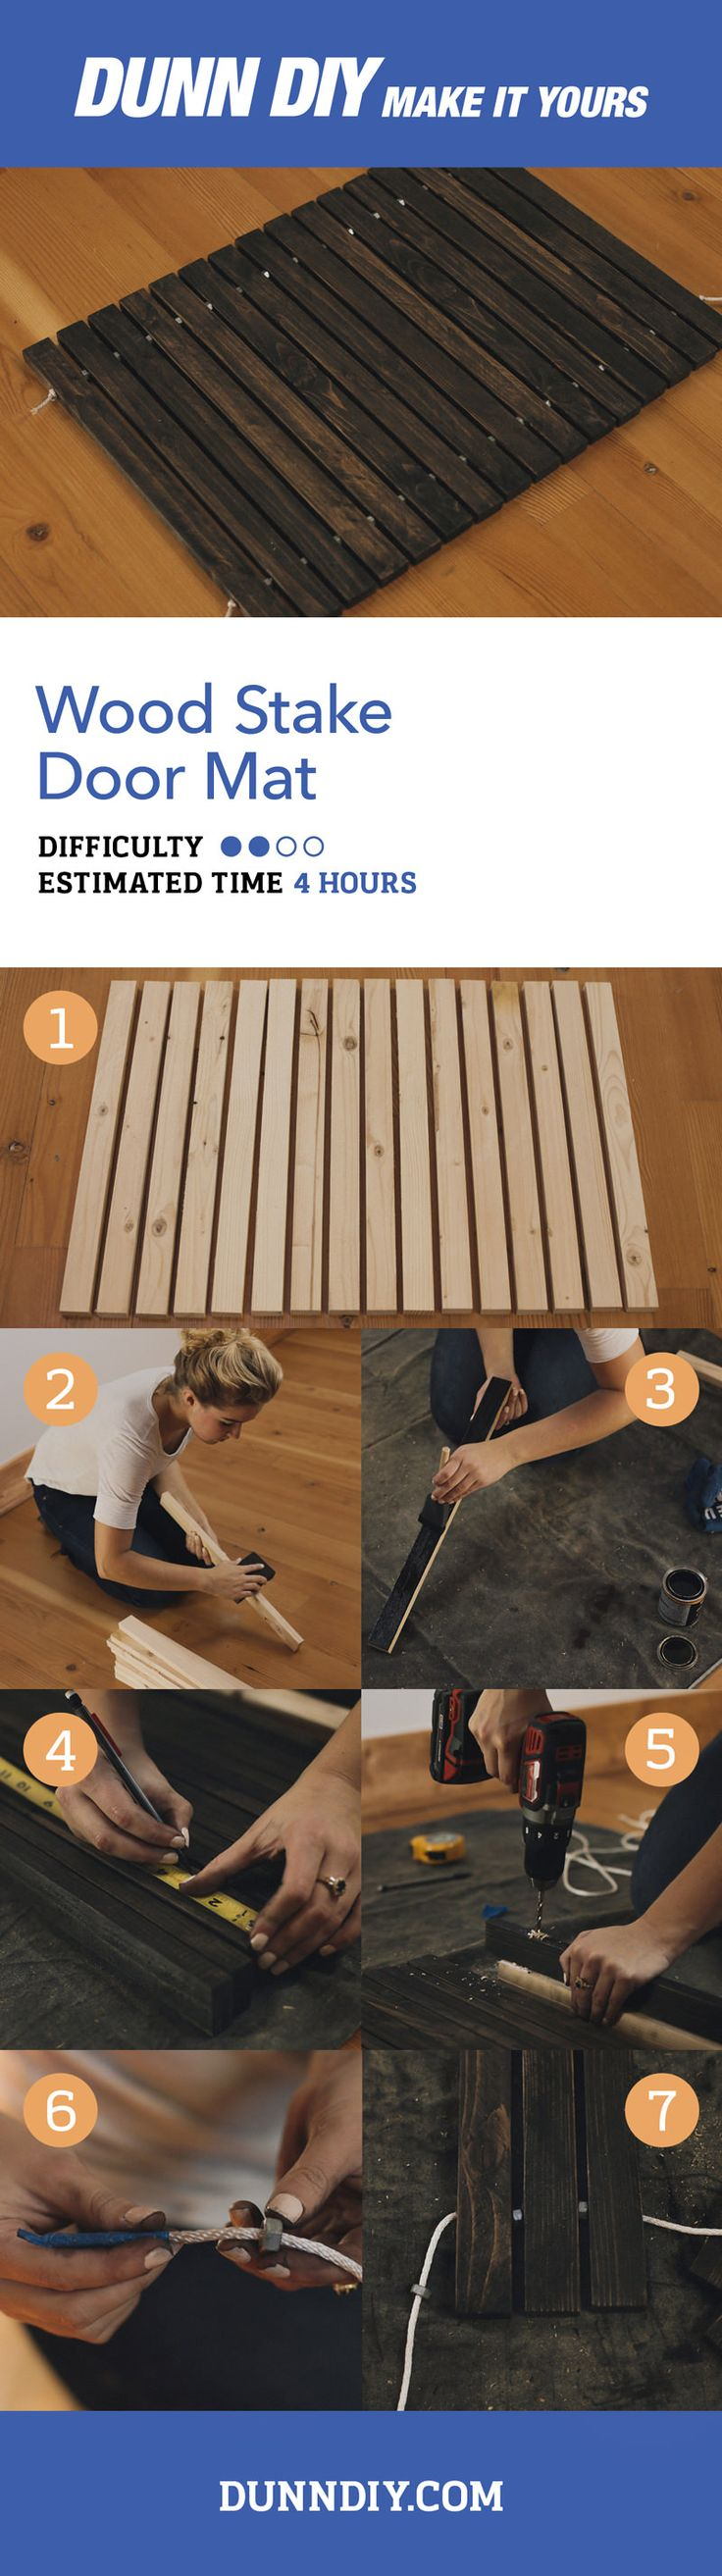 Keep the rain, mud, and muck out of your home in style with this wood stake door mat. Visit DunnDIY.com for step-by-step instructions.